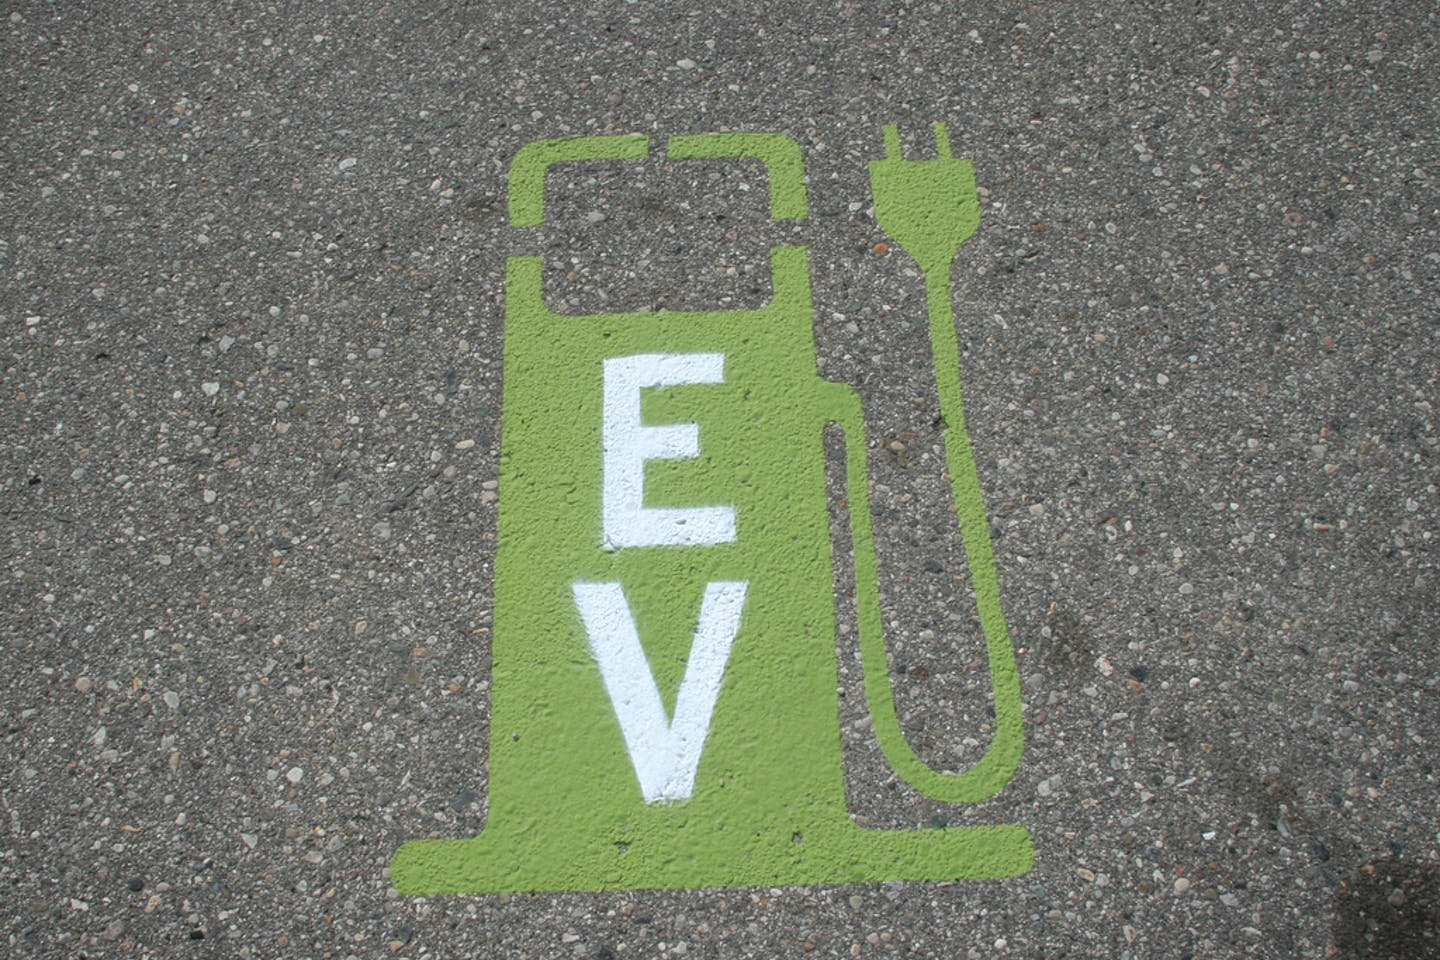 electric vehicle charging station coming soon